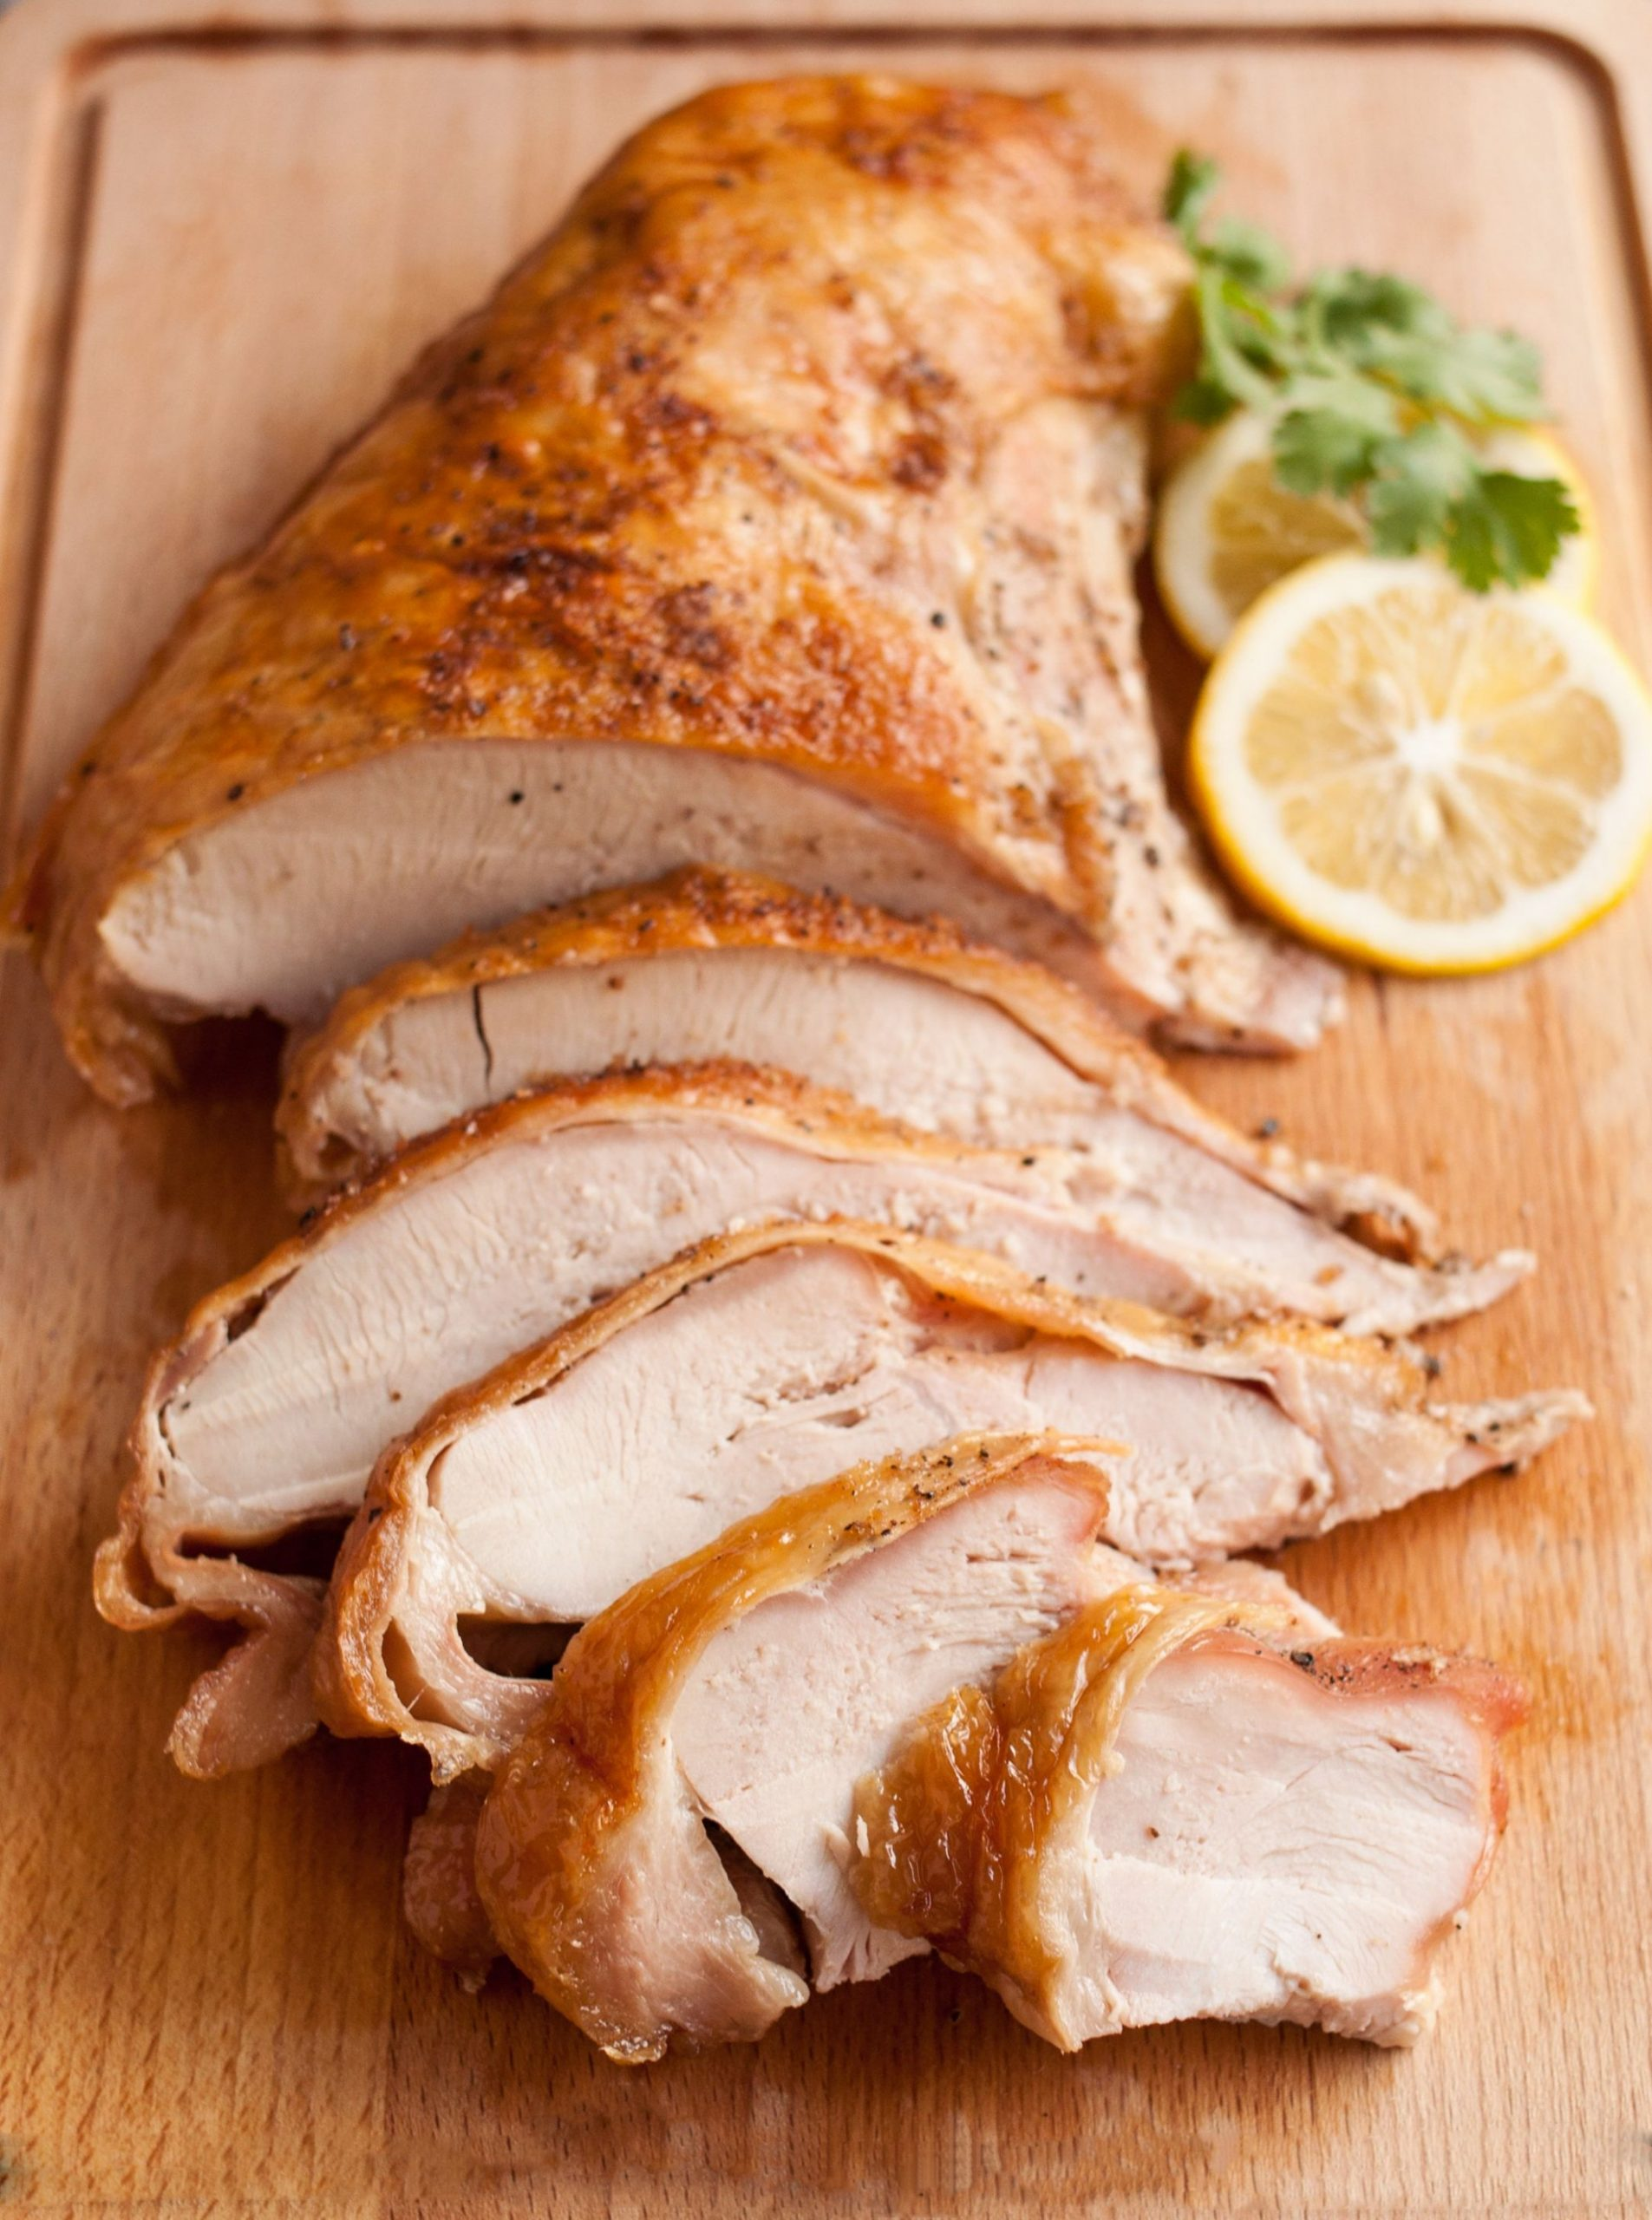 How To Cook Turkey Breast - Recipes Cooking Turkey Breast